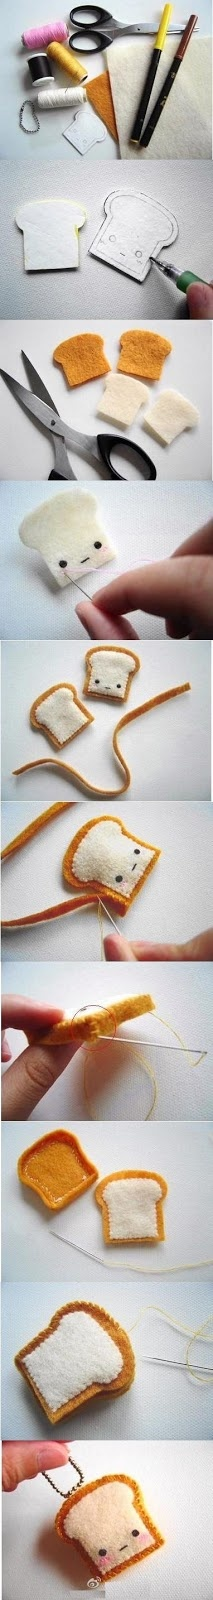 DIY felt keychain, omg these are sooo cute! (i might just have to make one or two or more)